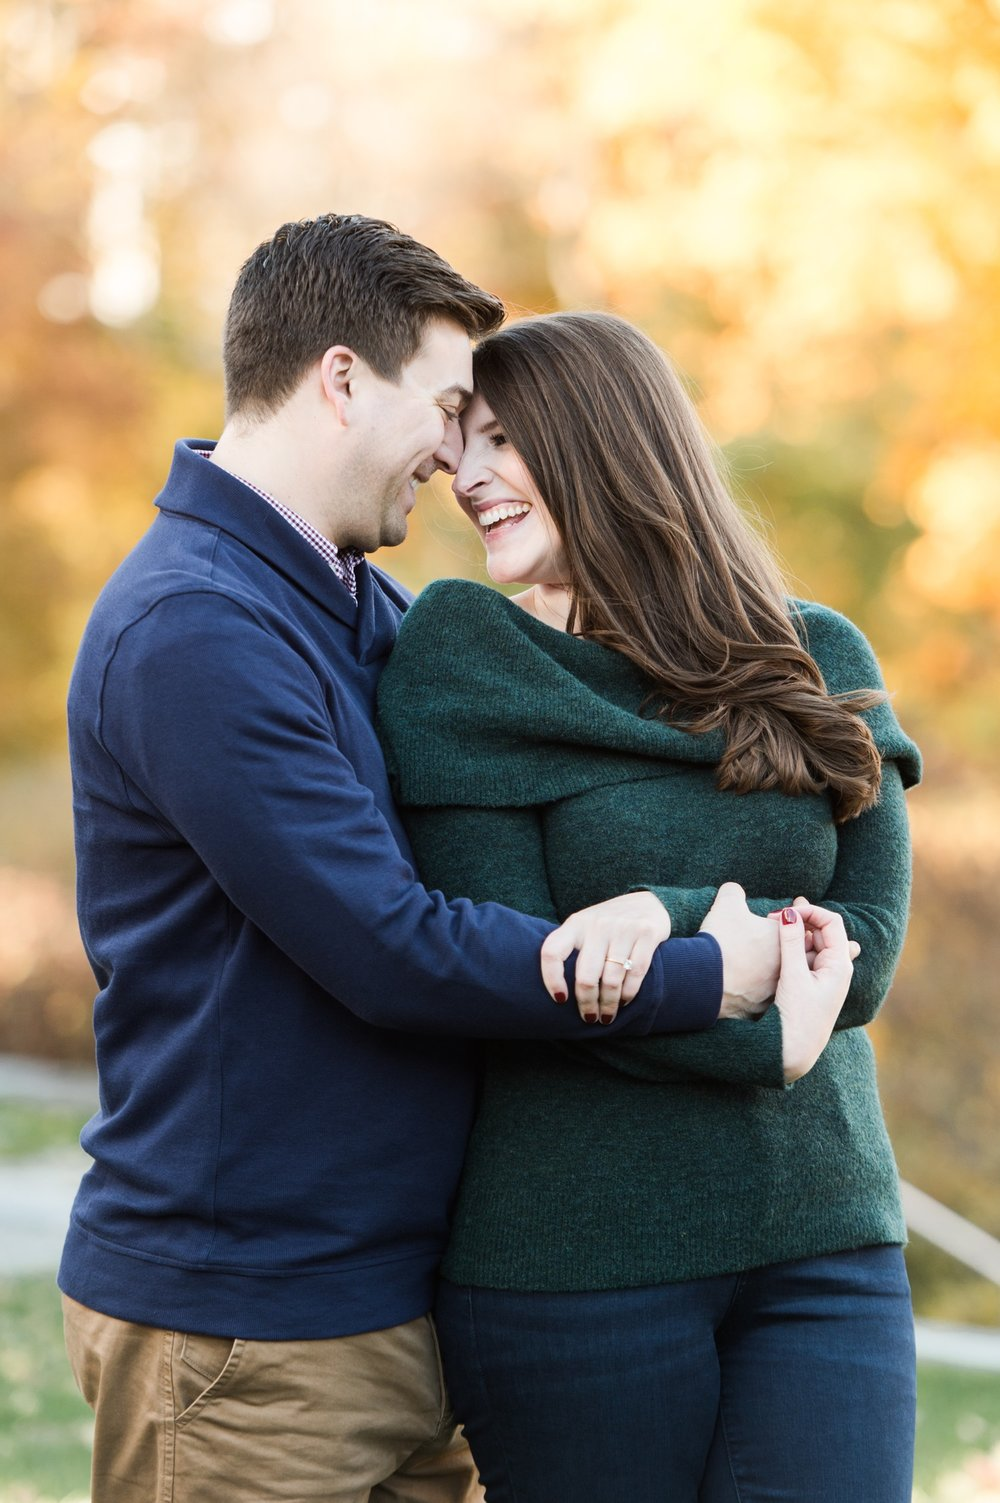 arnold arboretum fall boston engagement session jewel tones cozy sweaters  and fall foliage